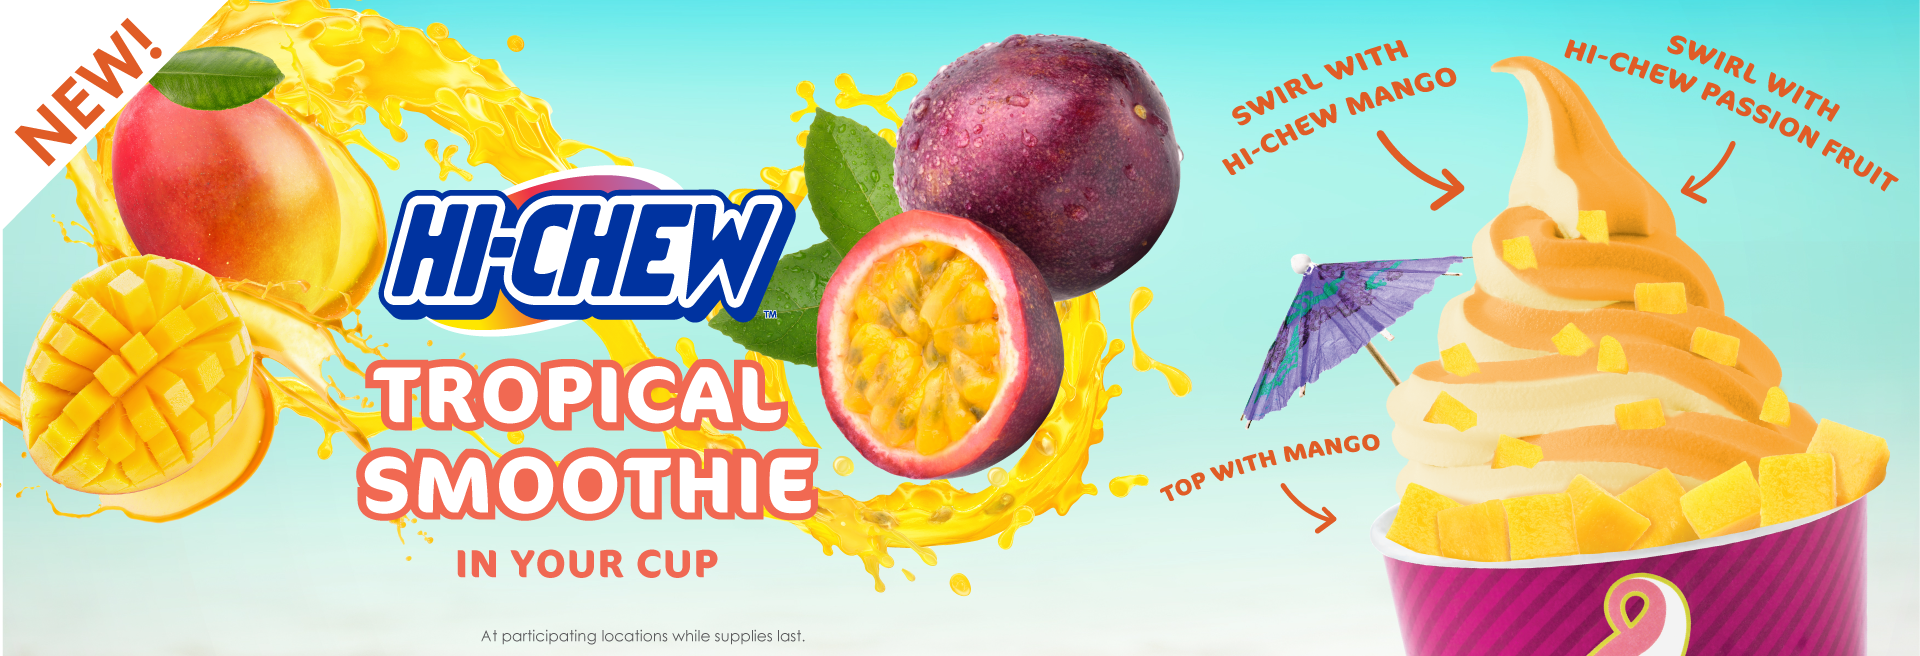 Double up for a delicious new flavor! When you swirl HI-CHEW Mango and HI-CHEW Passion Fruit you get a tasty summer treat.